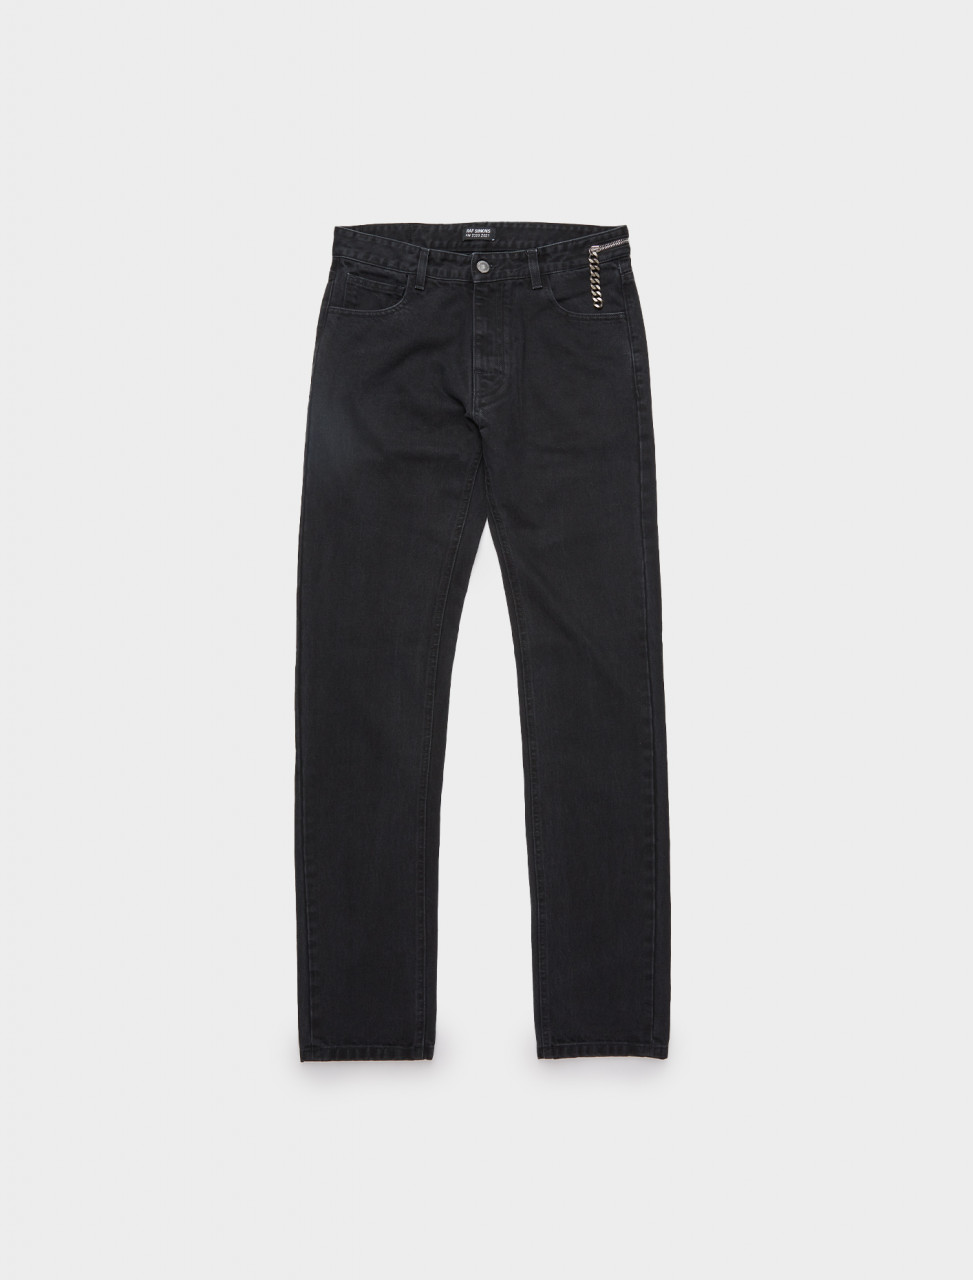 162-202-310-10134-00099 RAF SIMONS SLIM FIT DENIM W BIG ZIP BLACK